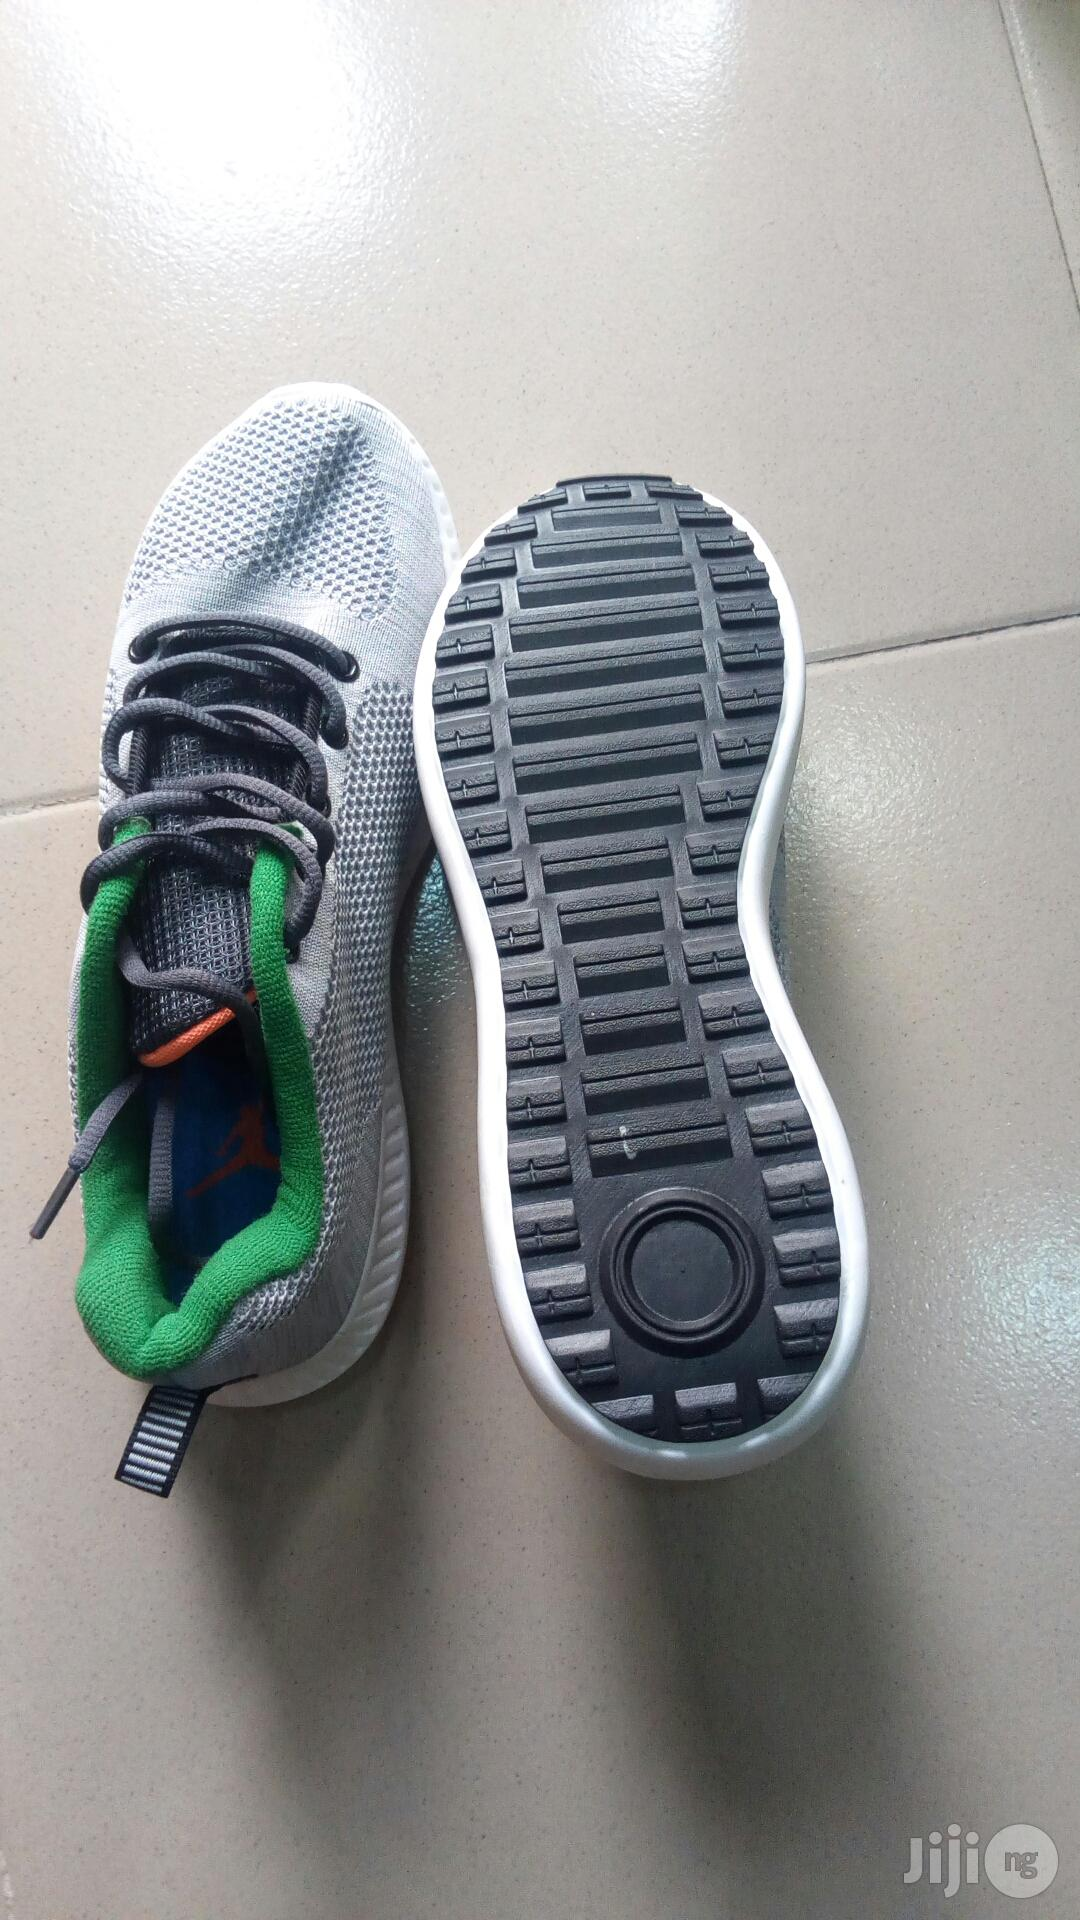 Good Quality Canvas | Shoes for sale in Ikoyi, Lagos State, Nigeria